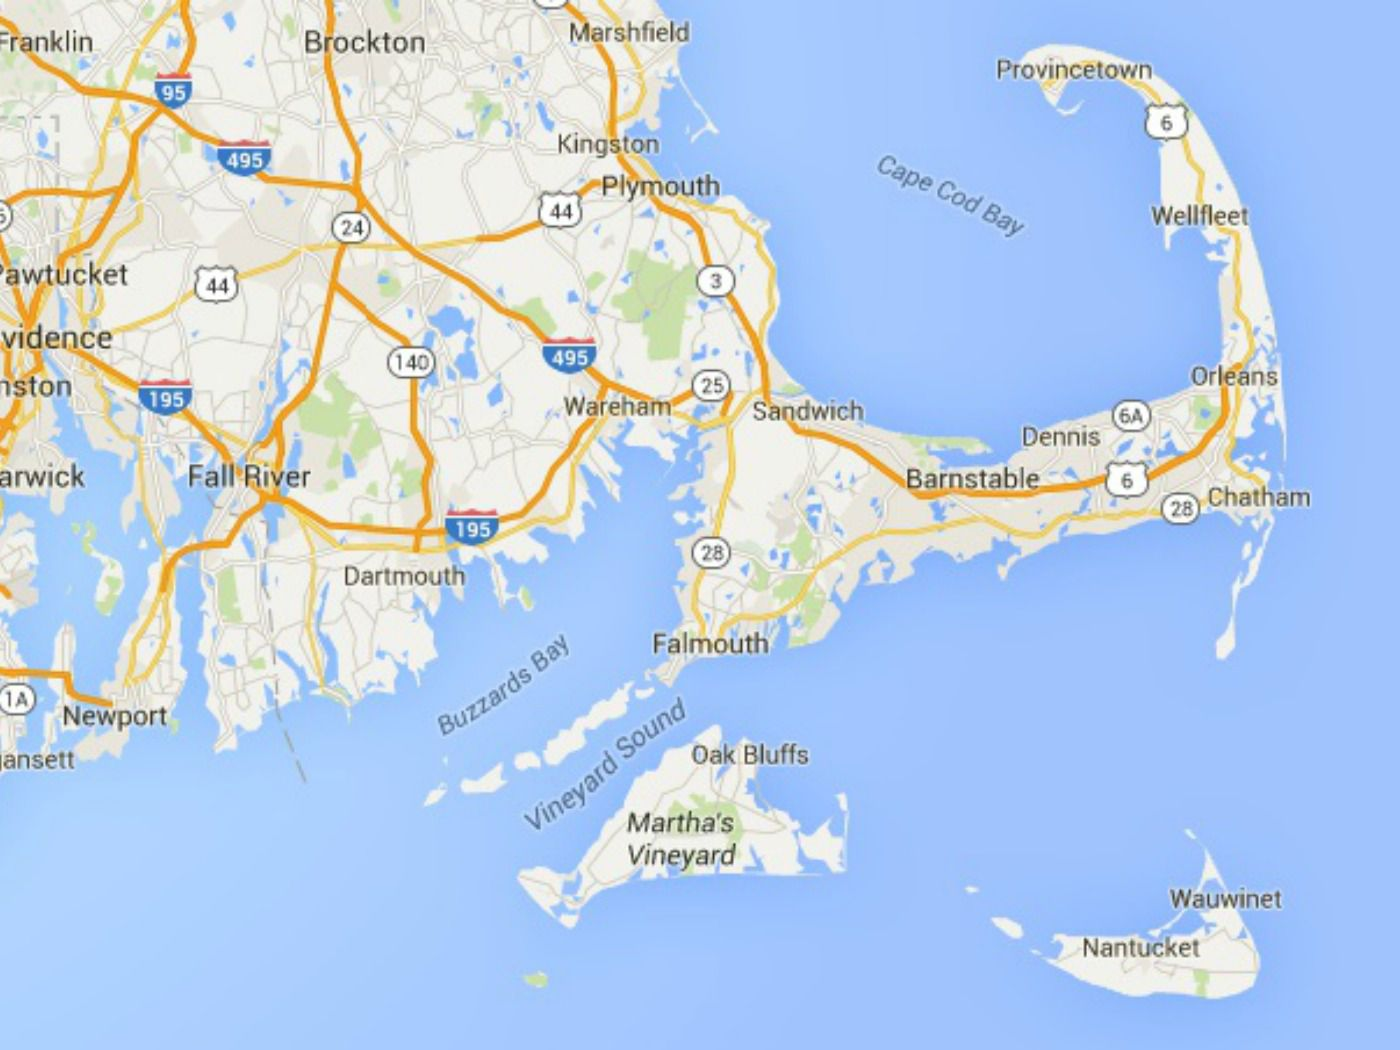 Marthas Vineyard Map Maps of Cape Cod, Martha's Vineyard, and Nantucket